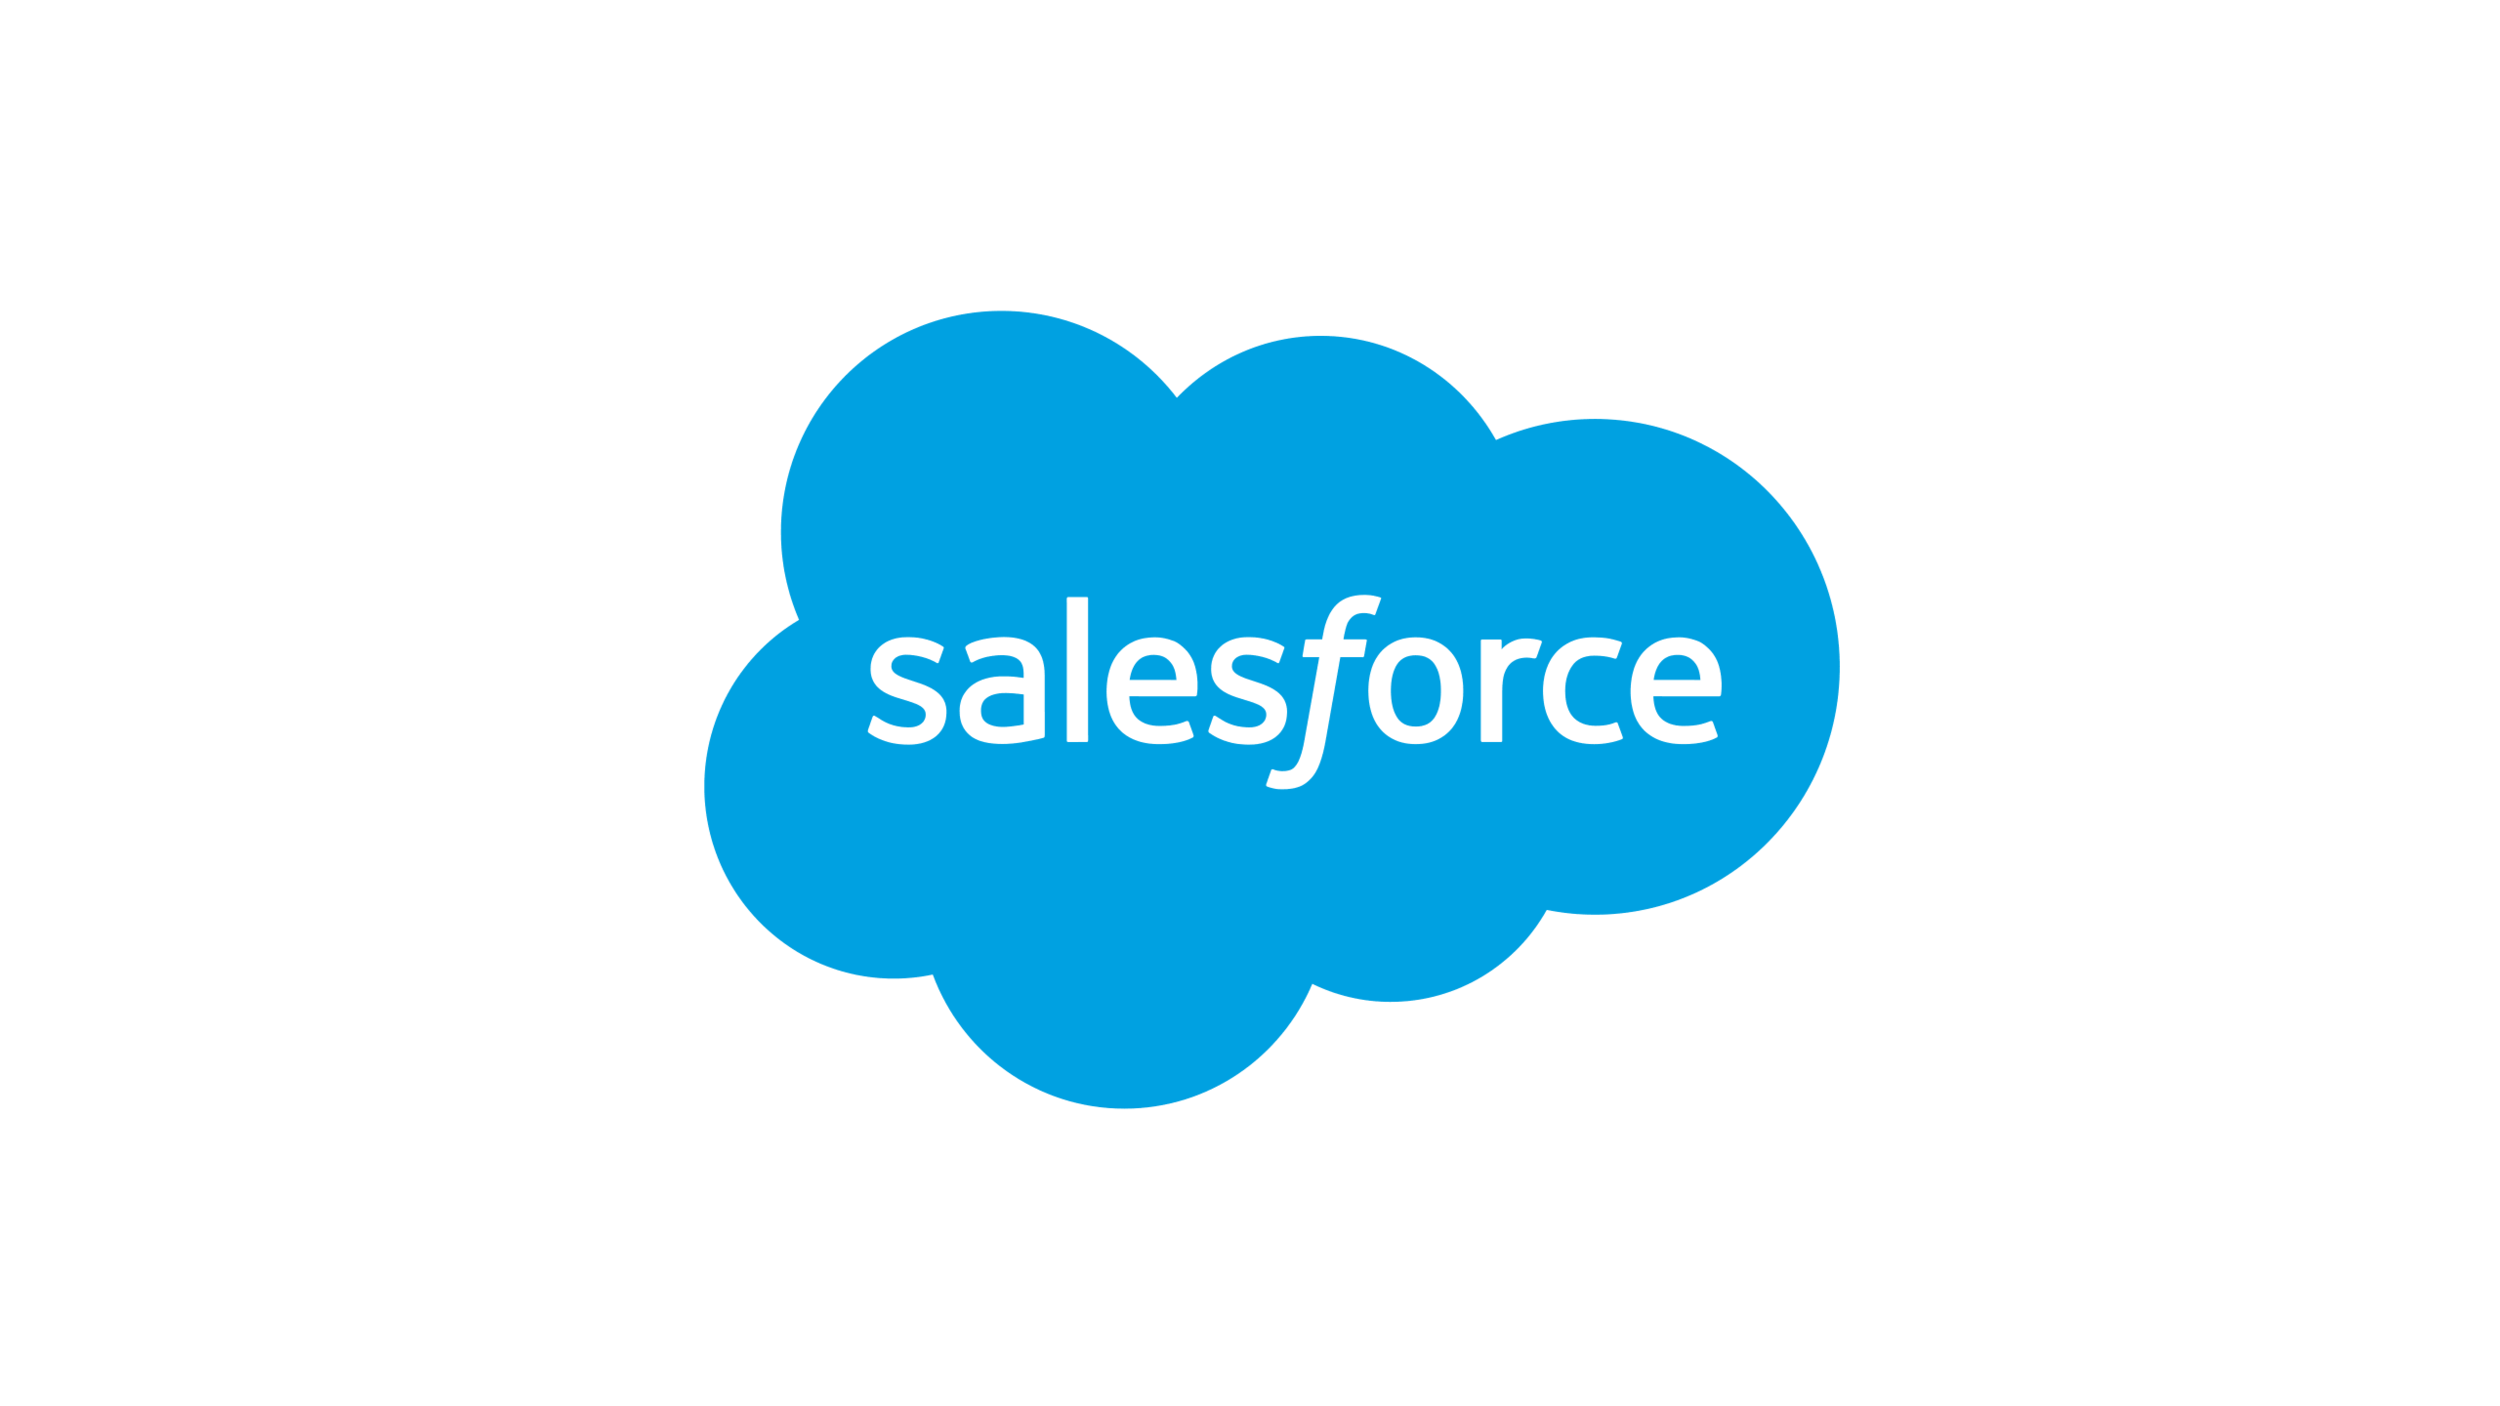 salesforce-brand-logo-blue-on-white.png